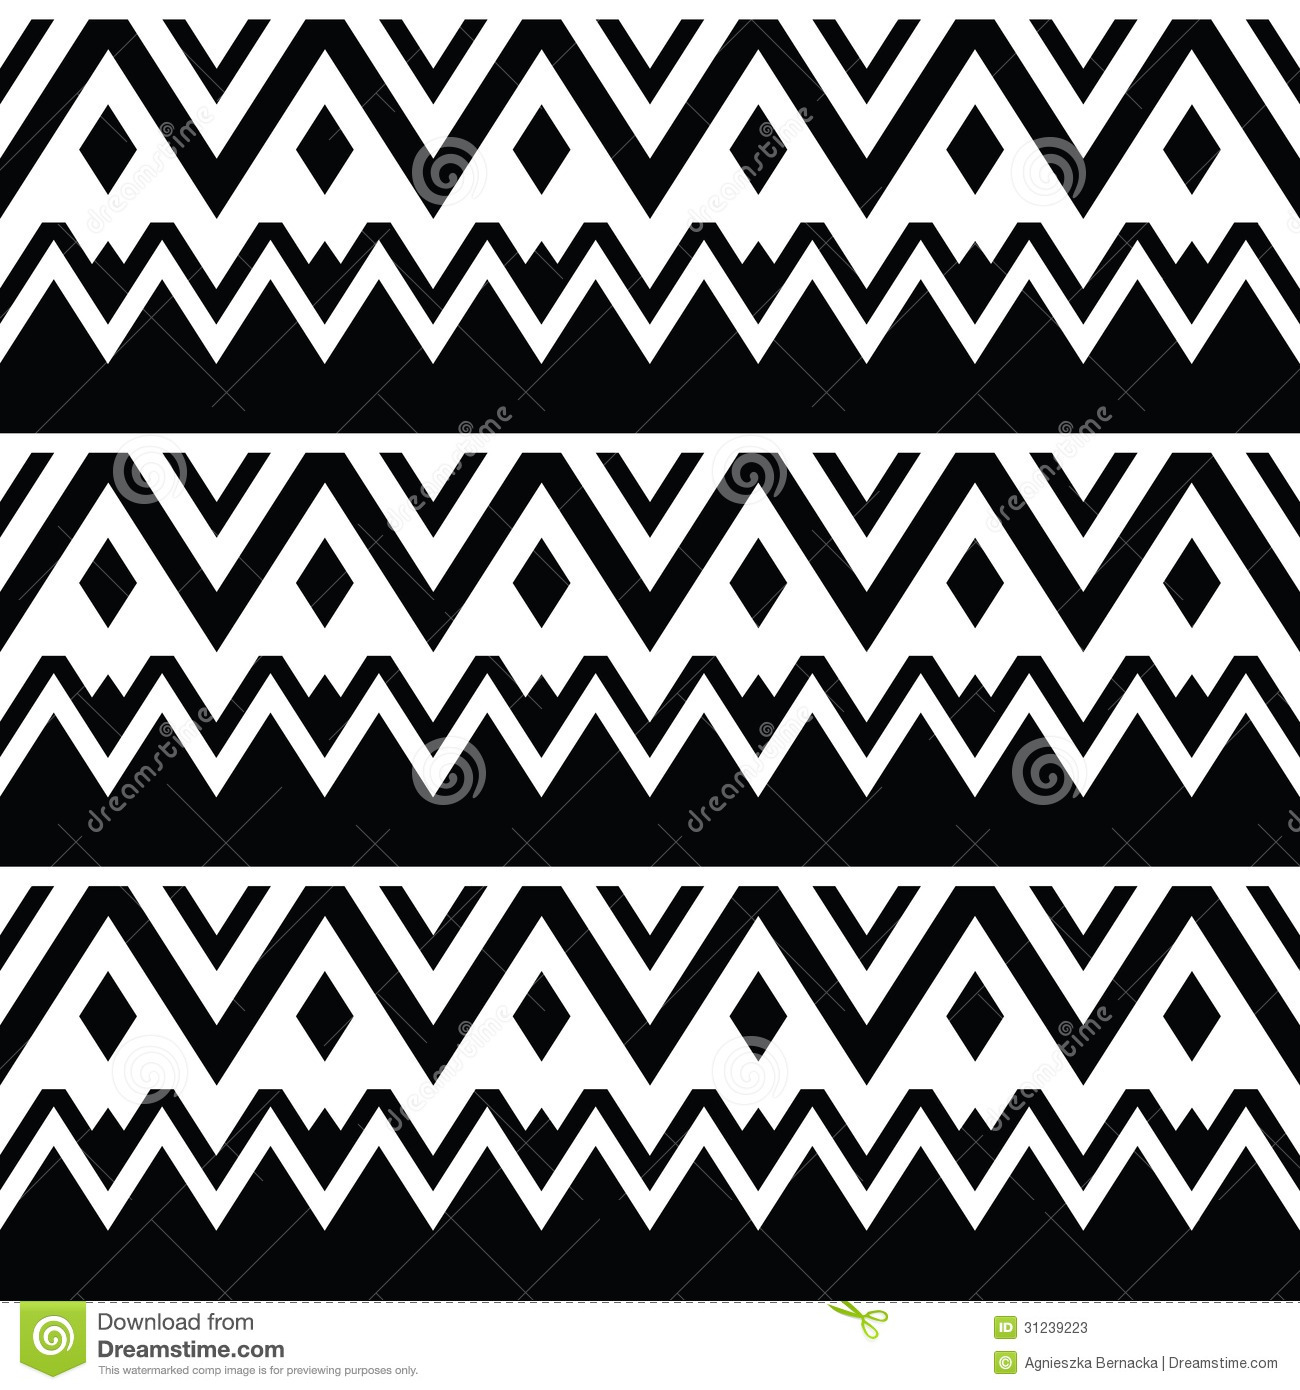 Background geometric mexican patterns seamless vector zigzag maya - Aztec Seamless Pattern Tribal Black And White Background Stock Photos